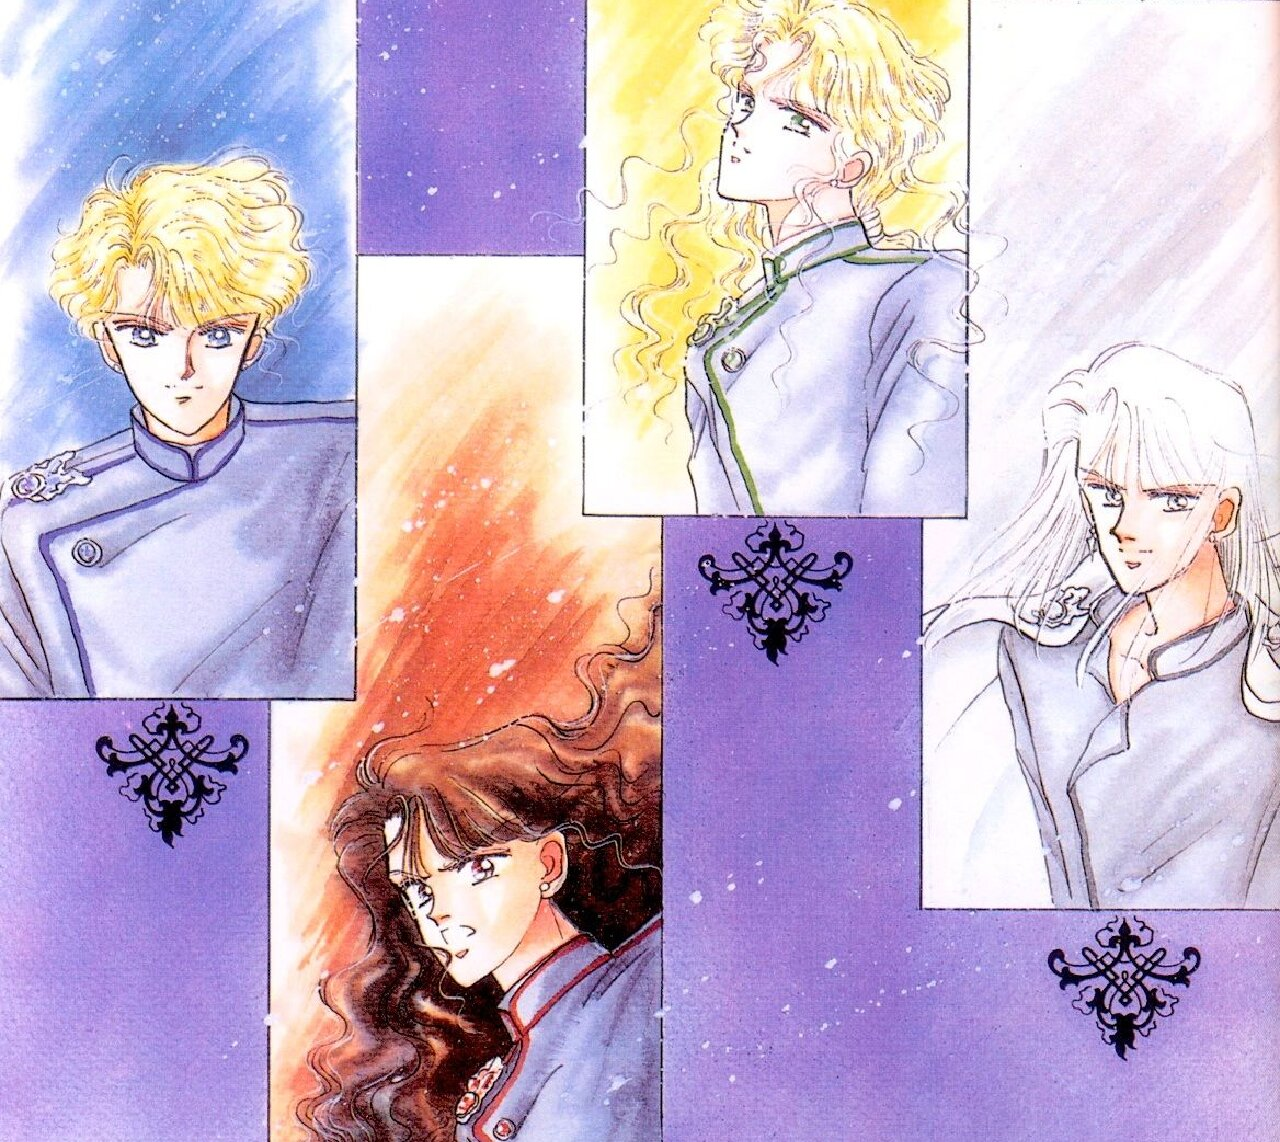 sailor moon guardianes celestialees manga